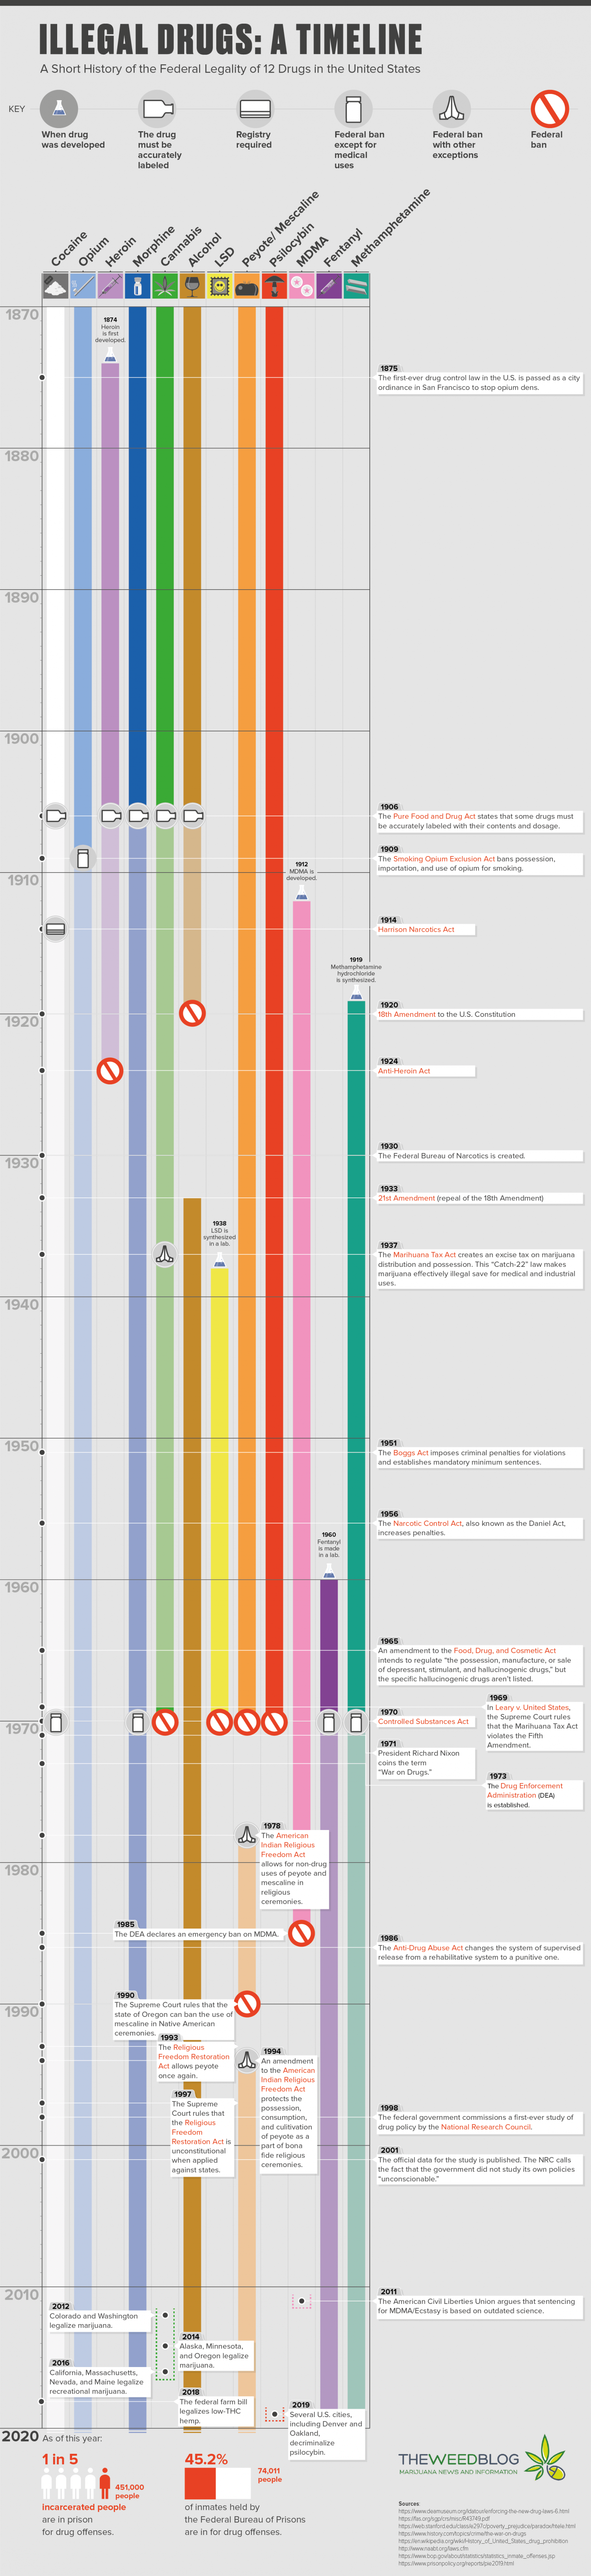 A Timeline of the Federal Legality of 12 Drugs in the United States Infographic